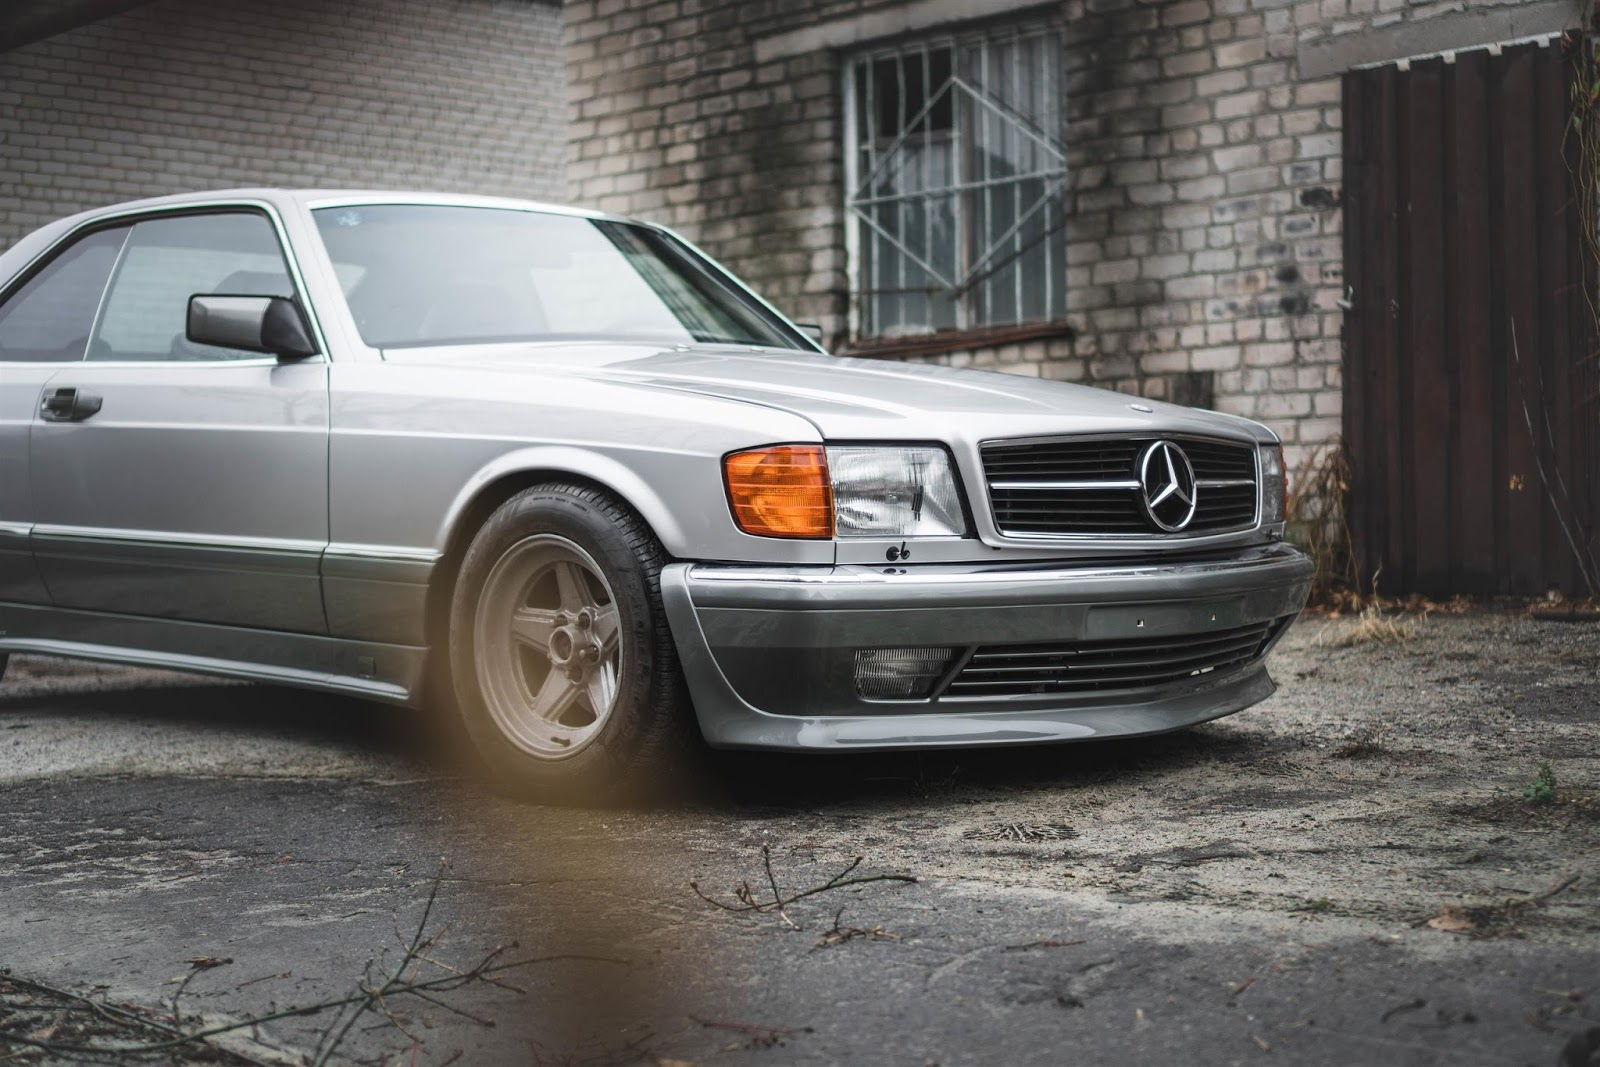 mercedes benz w126 sec on 16 amg penta wheels benztuning. Black Bedroom Furniture Sets. Home Design Ideas